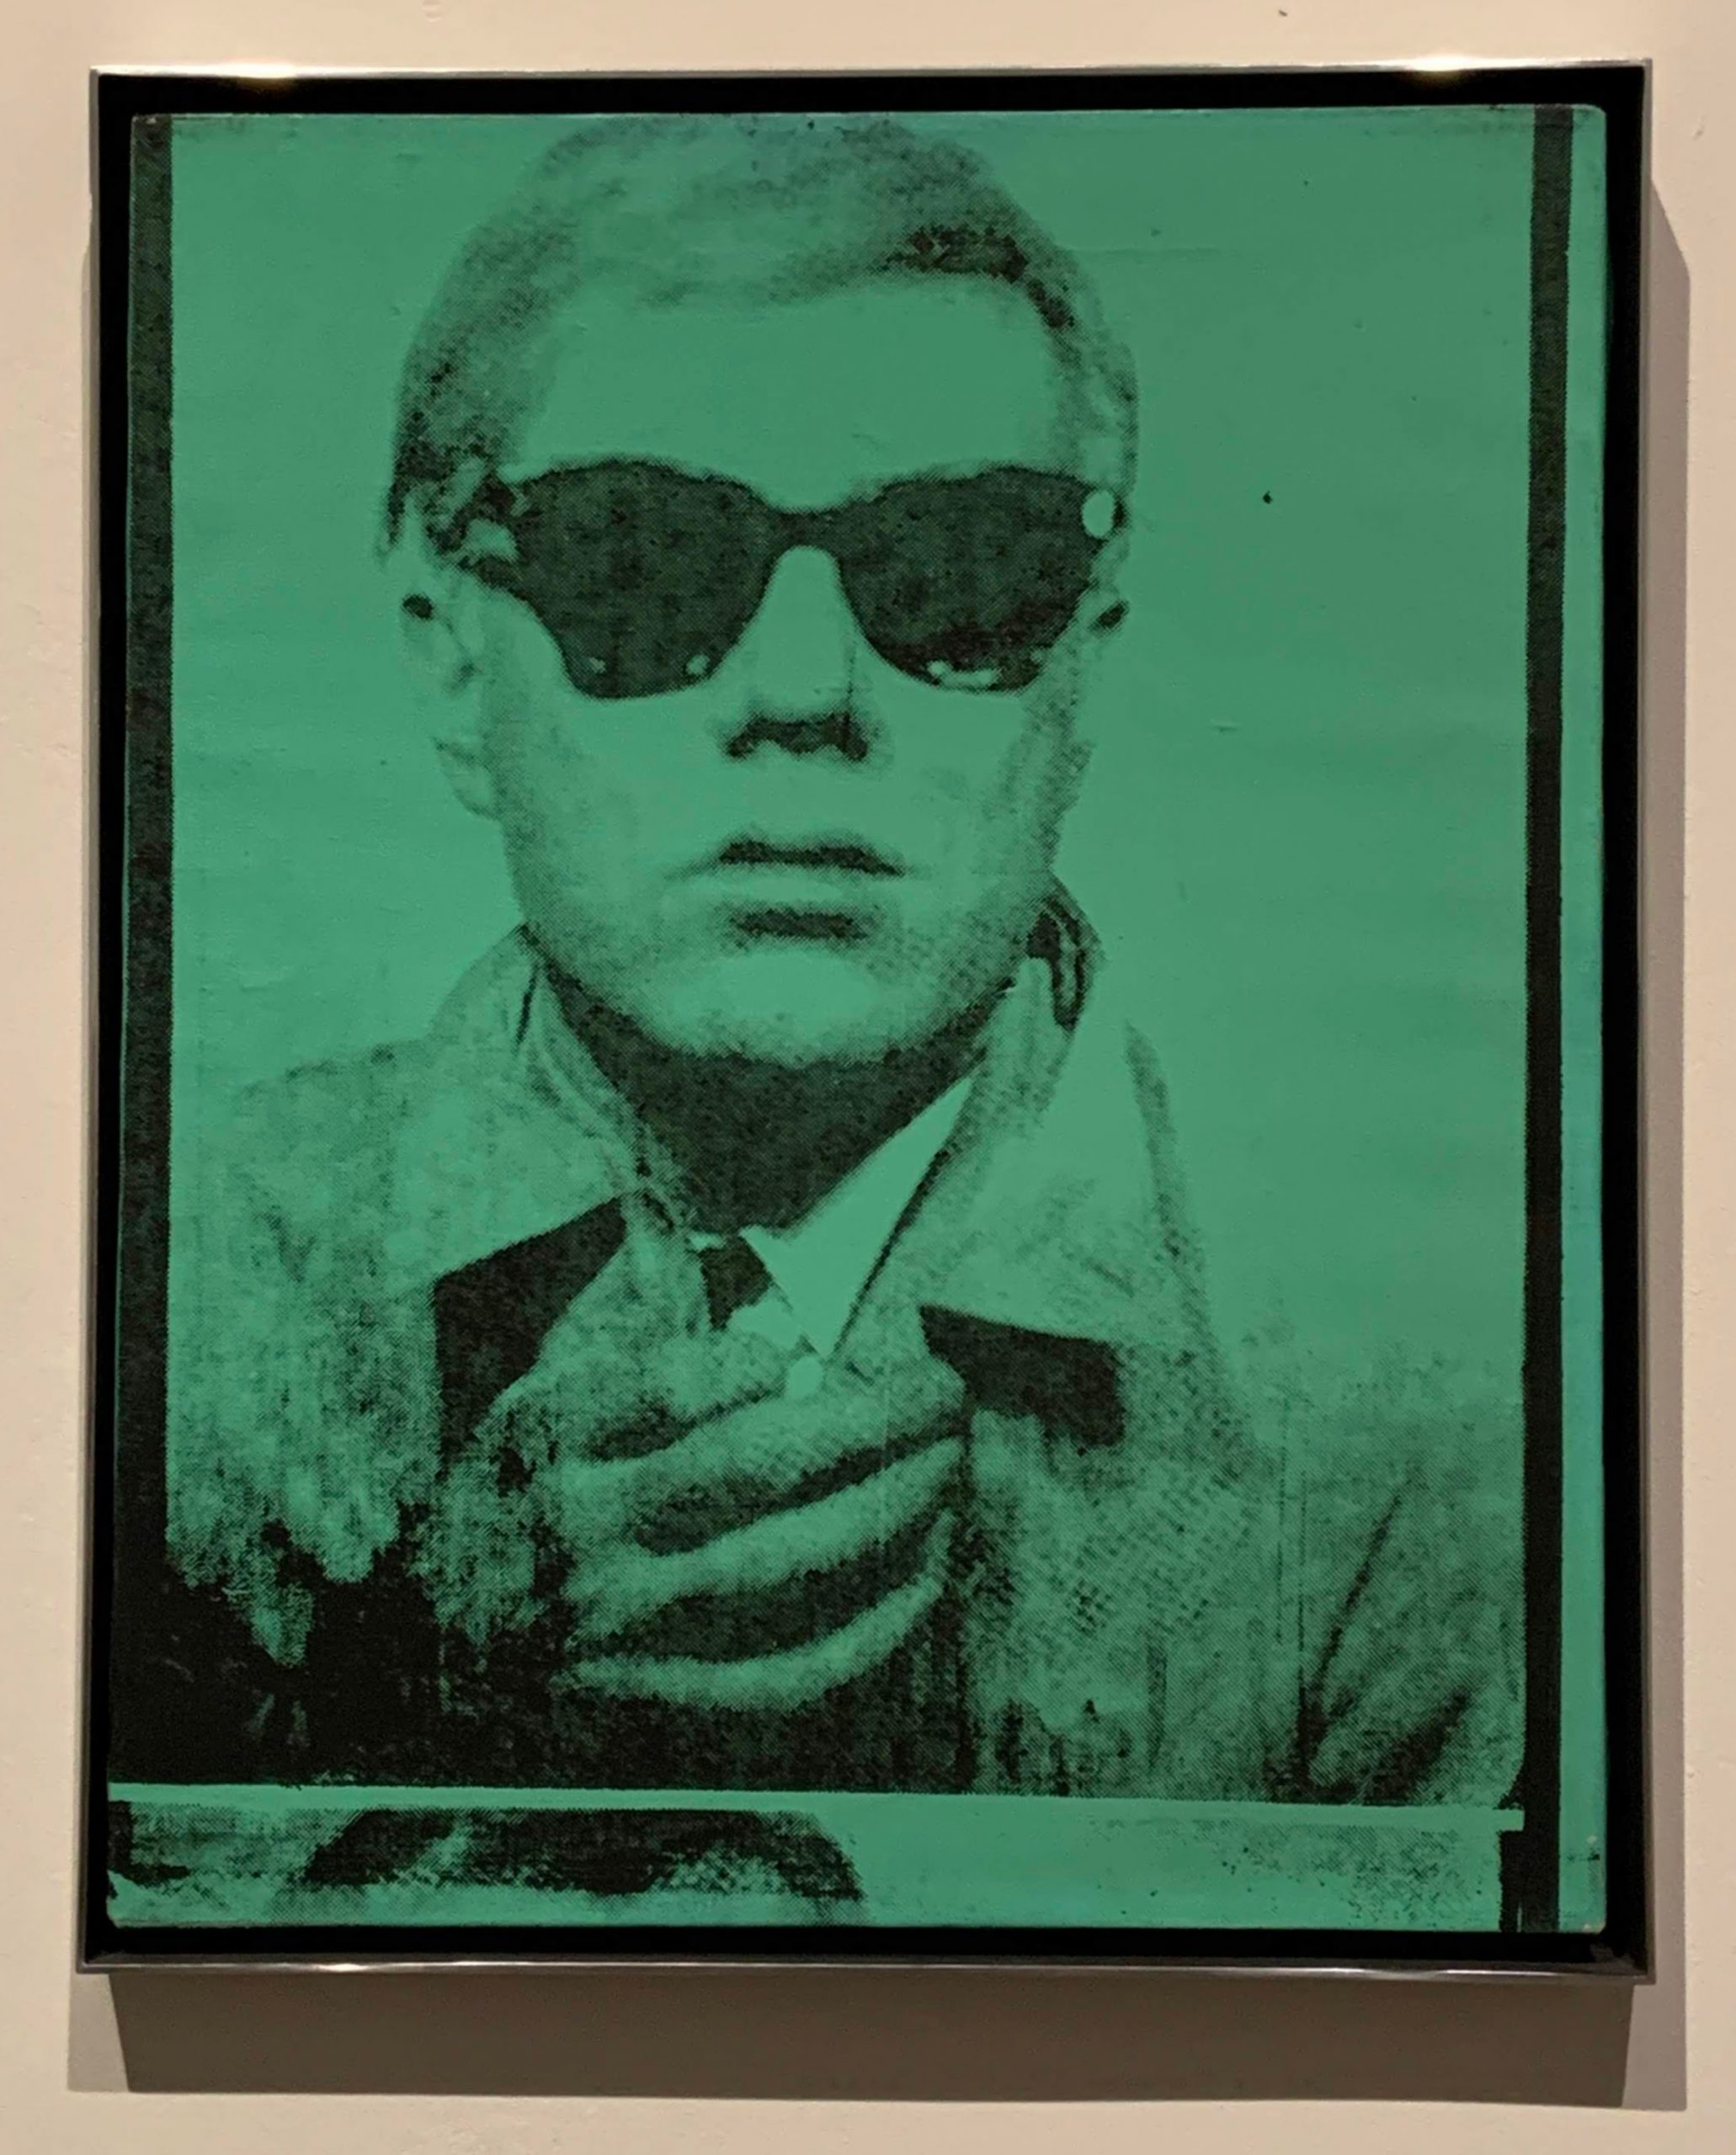 Andy Warhol - Self-Portrait 1964